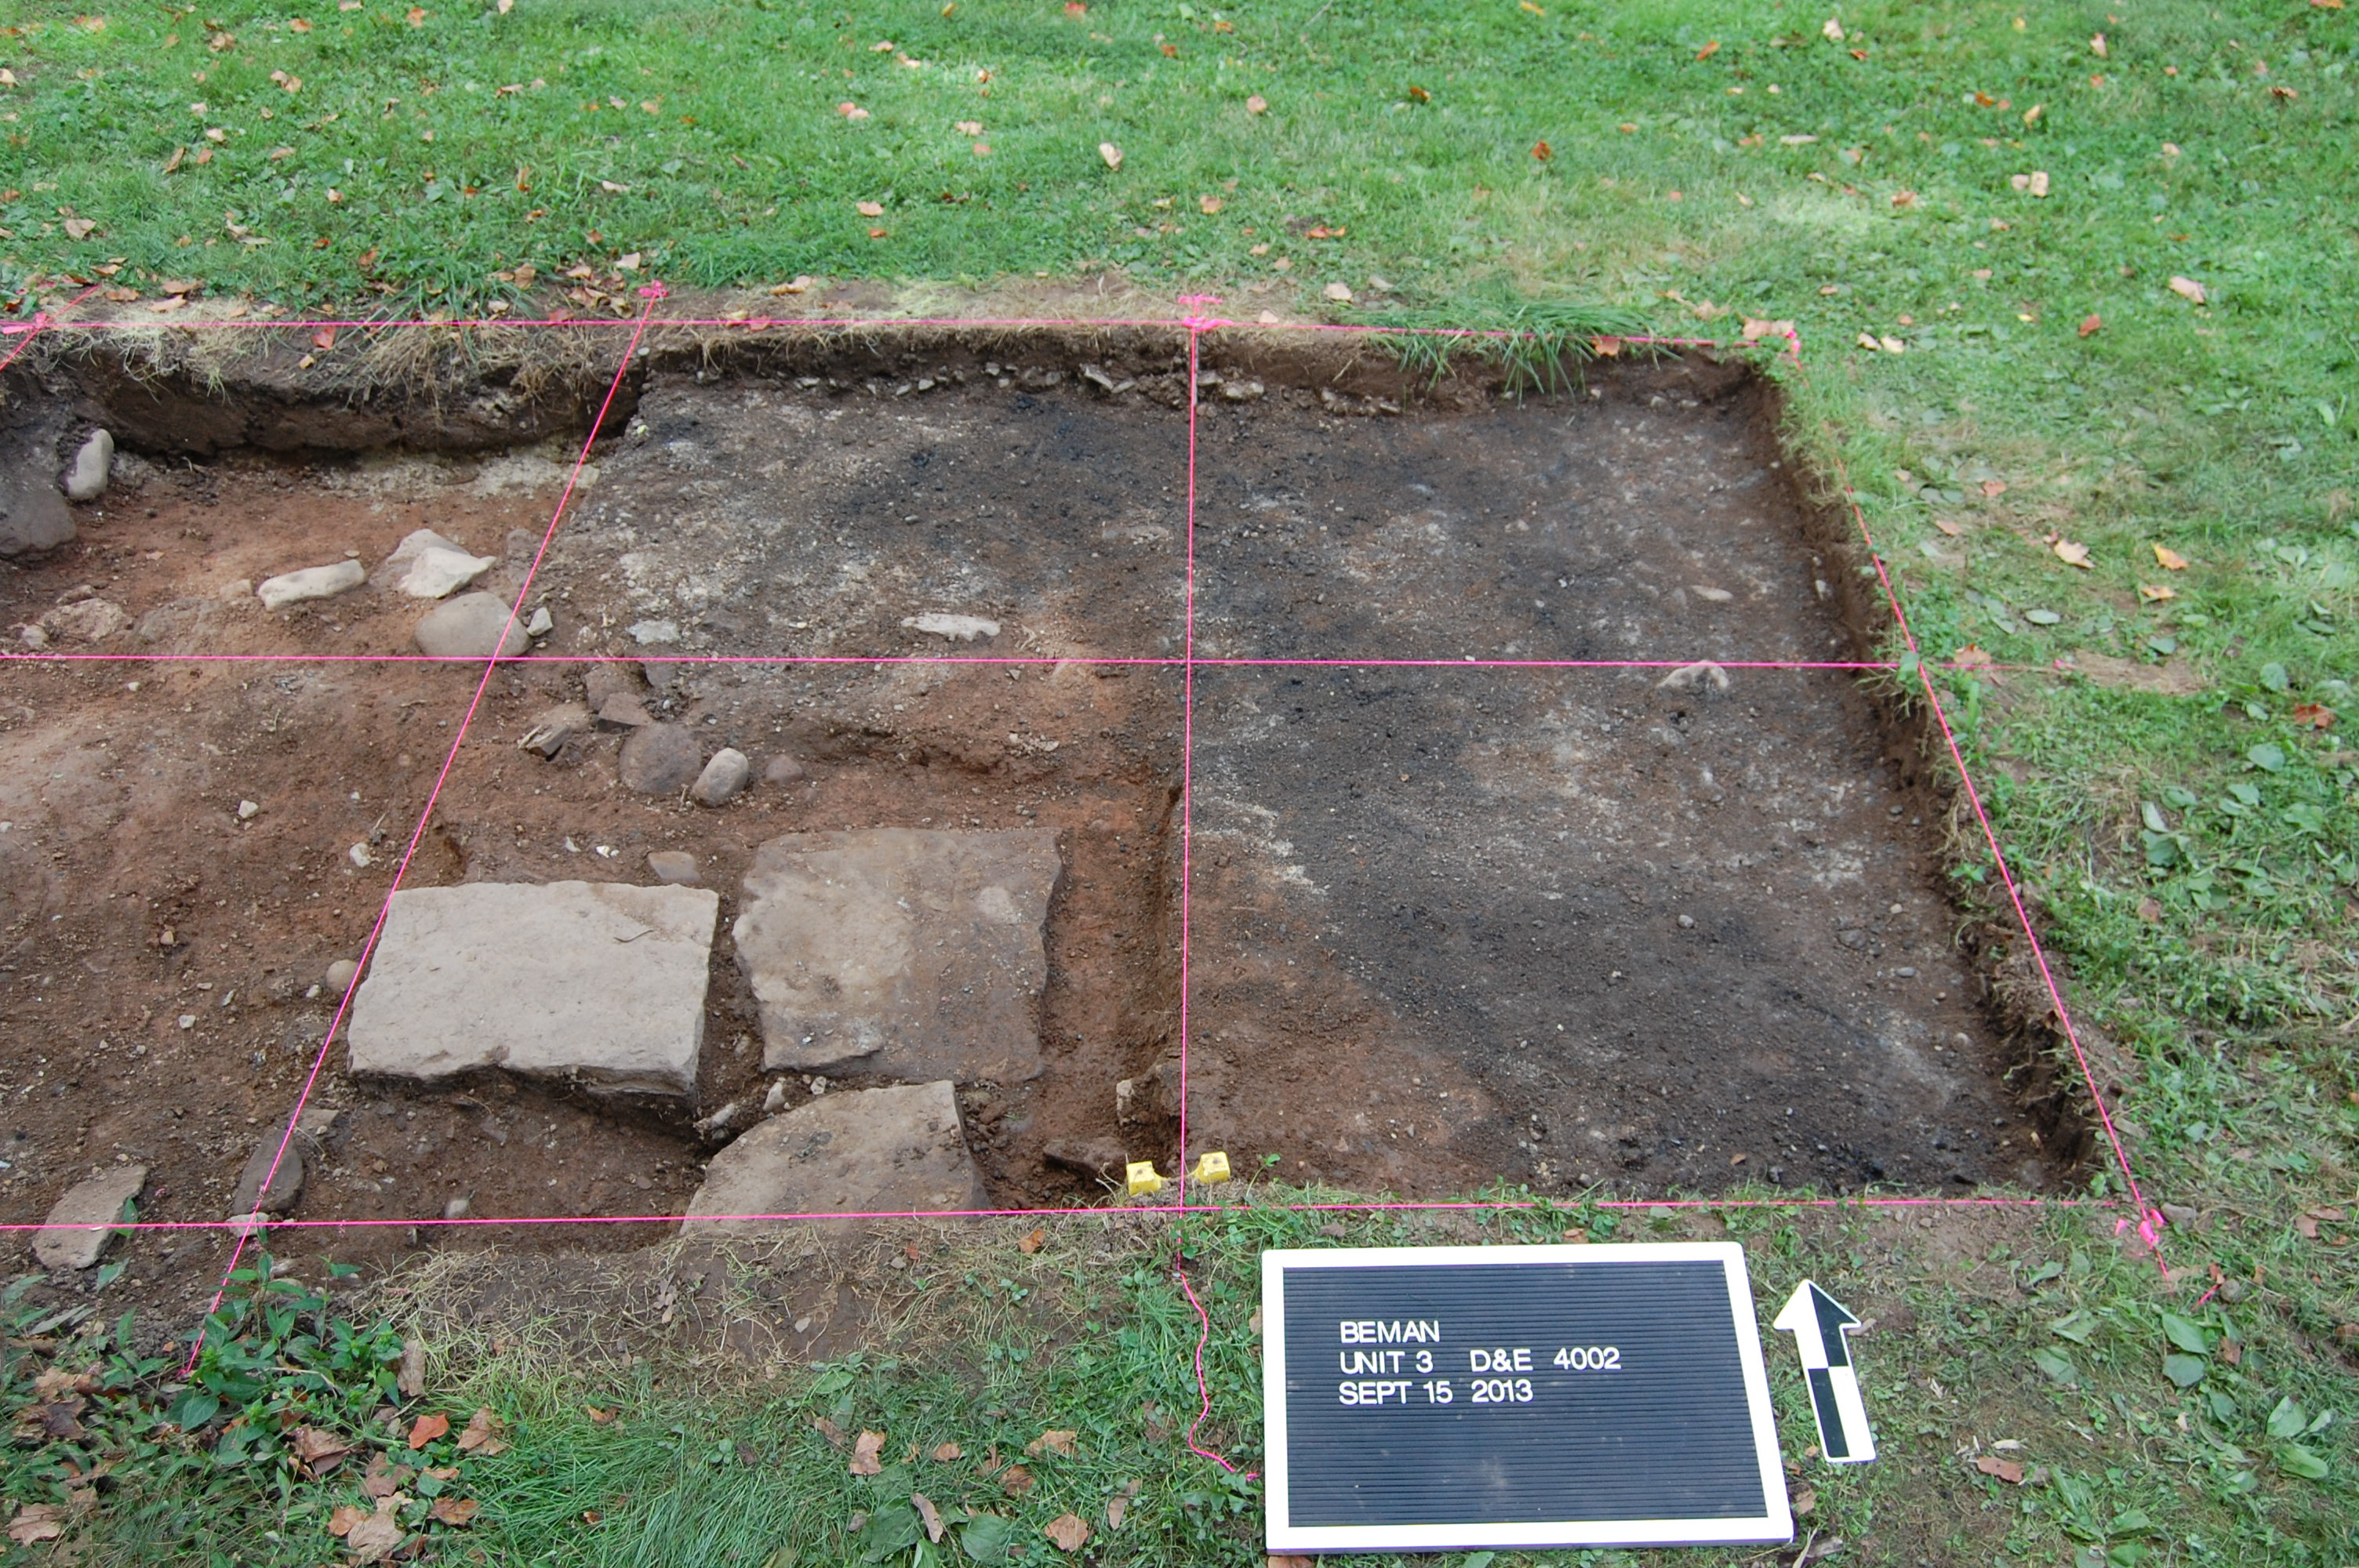 Unit 3 Beman Triangle 1 2 Meter 3b Meters X 3d And 3e Was Excavated During Different Weekends September 14 15